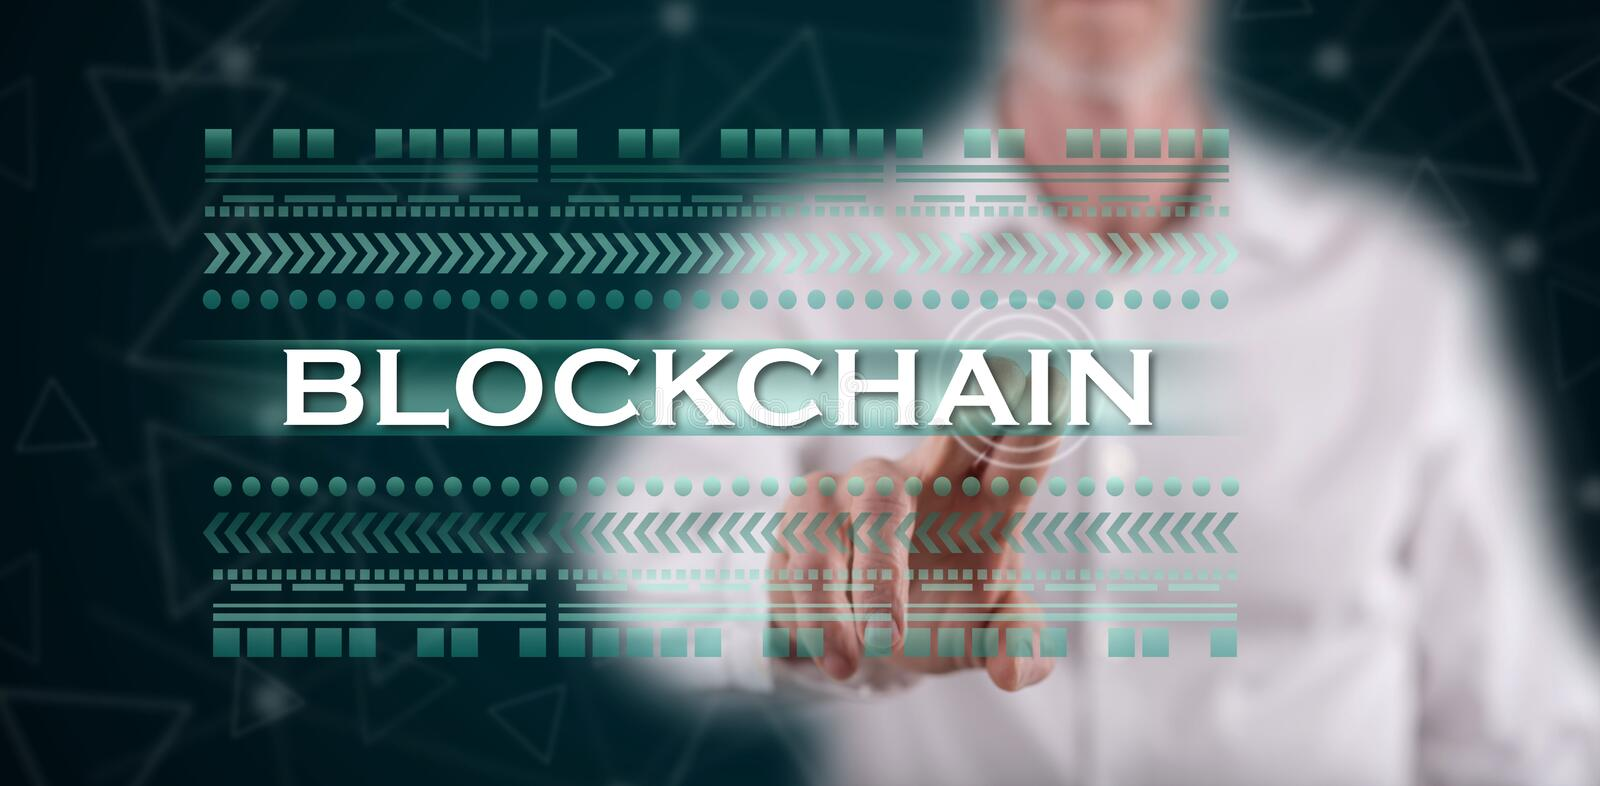 Man touching a blockchain concept royalty free stock photography